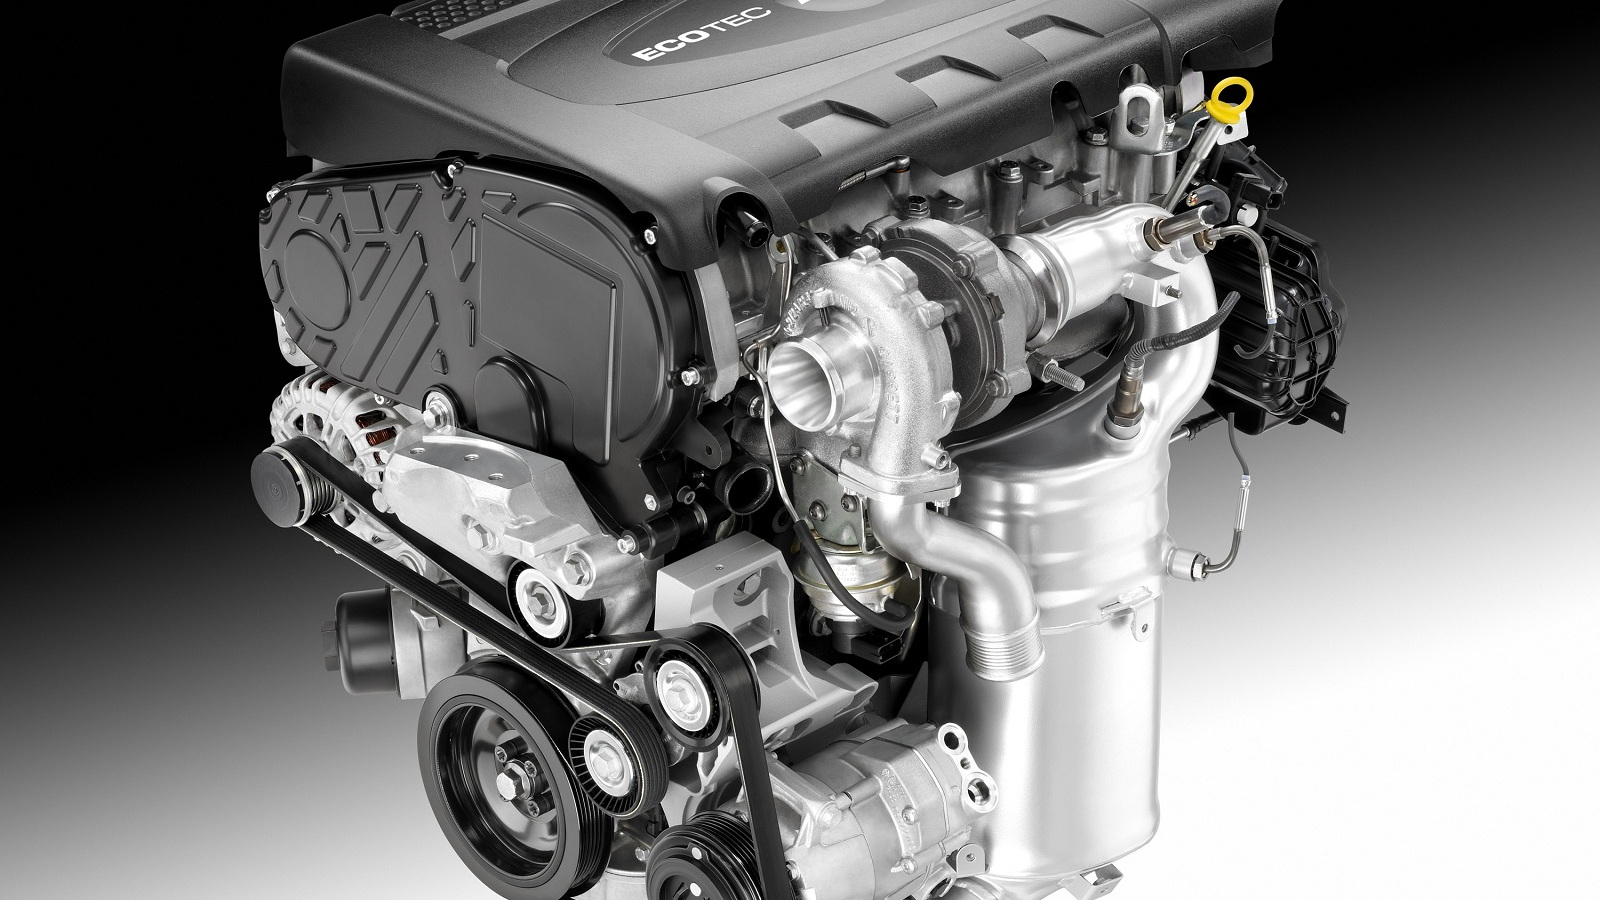 hight resolution of 2014 chevrolet cruze clean turbo diesel full details chevy cruze engine diagram read more chevrolet cruze engine engine